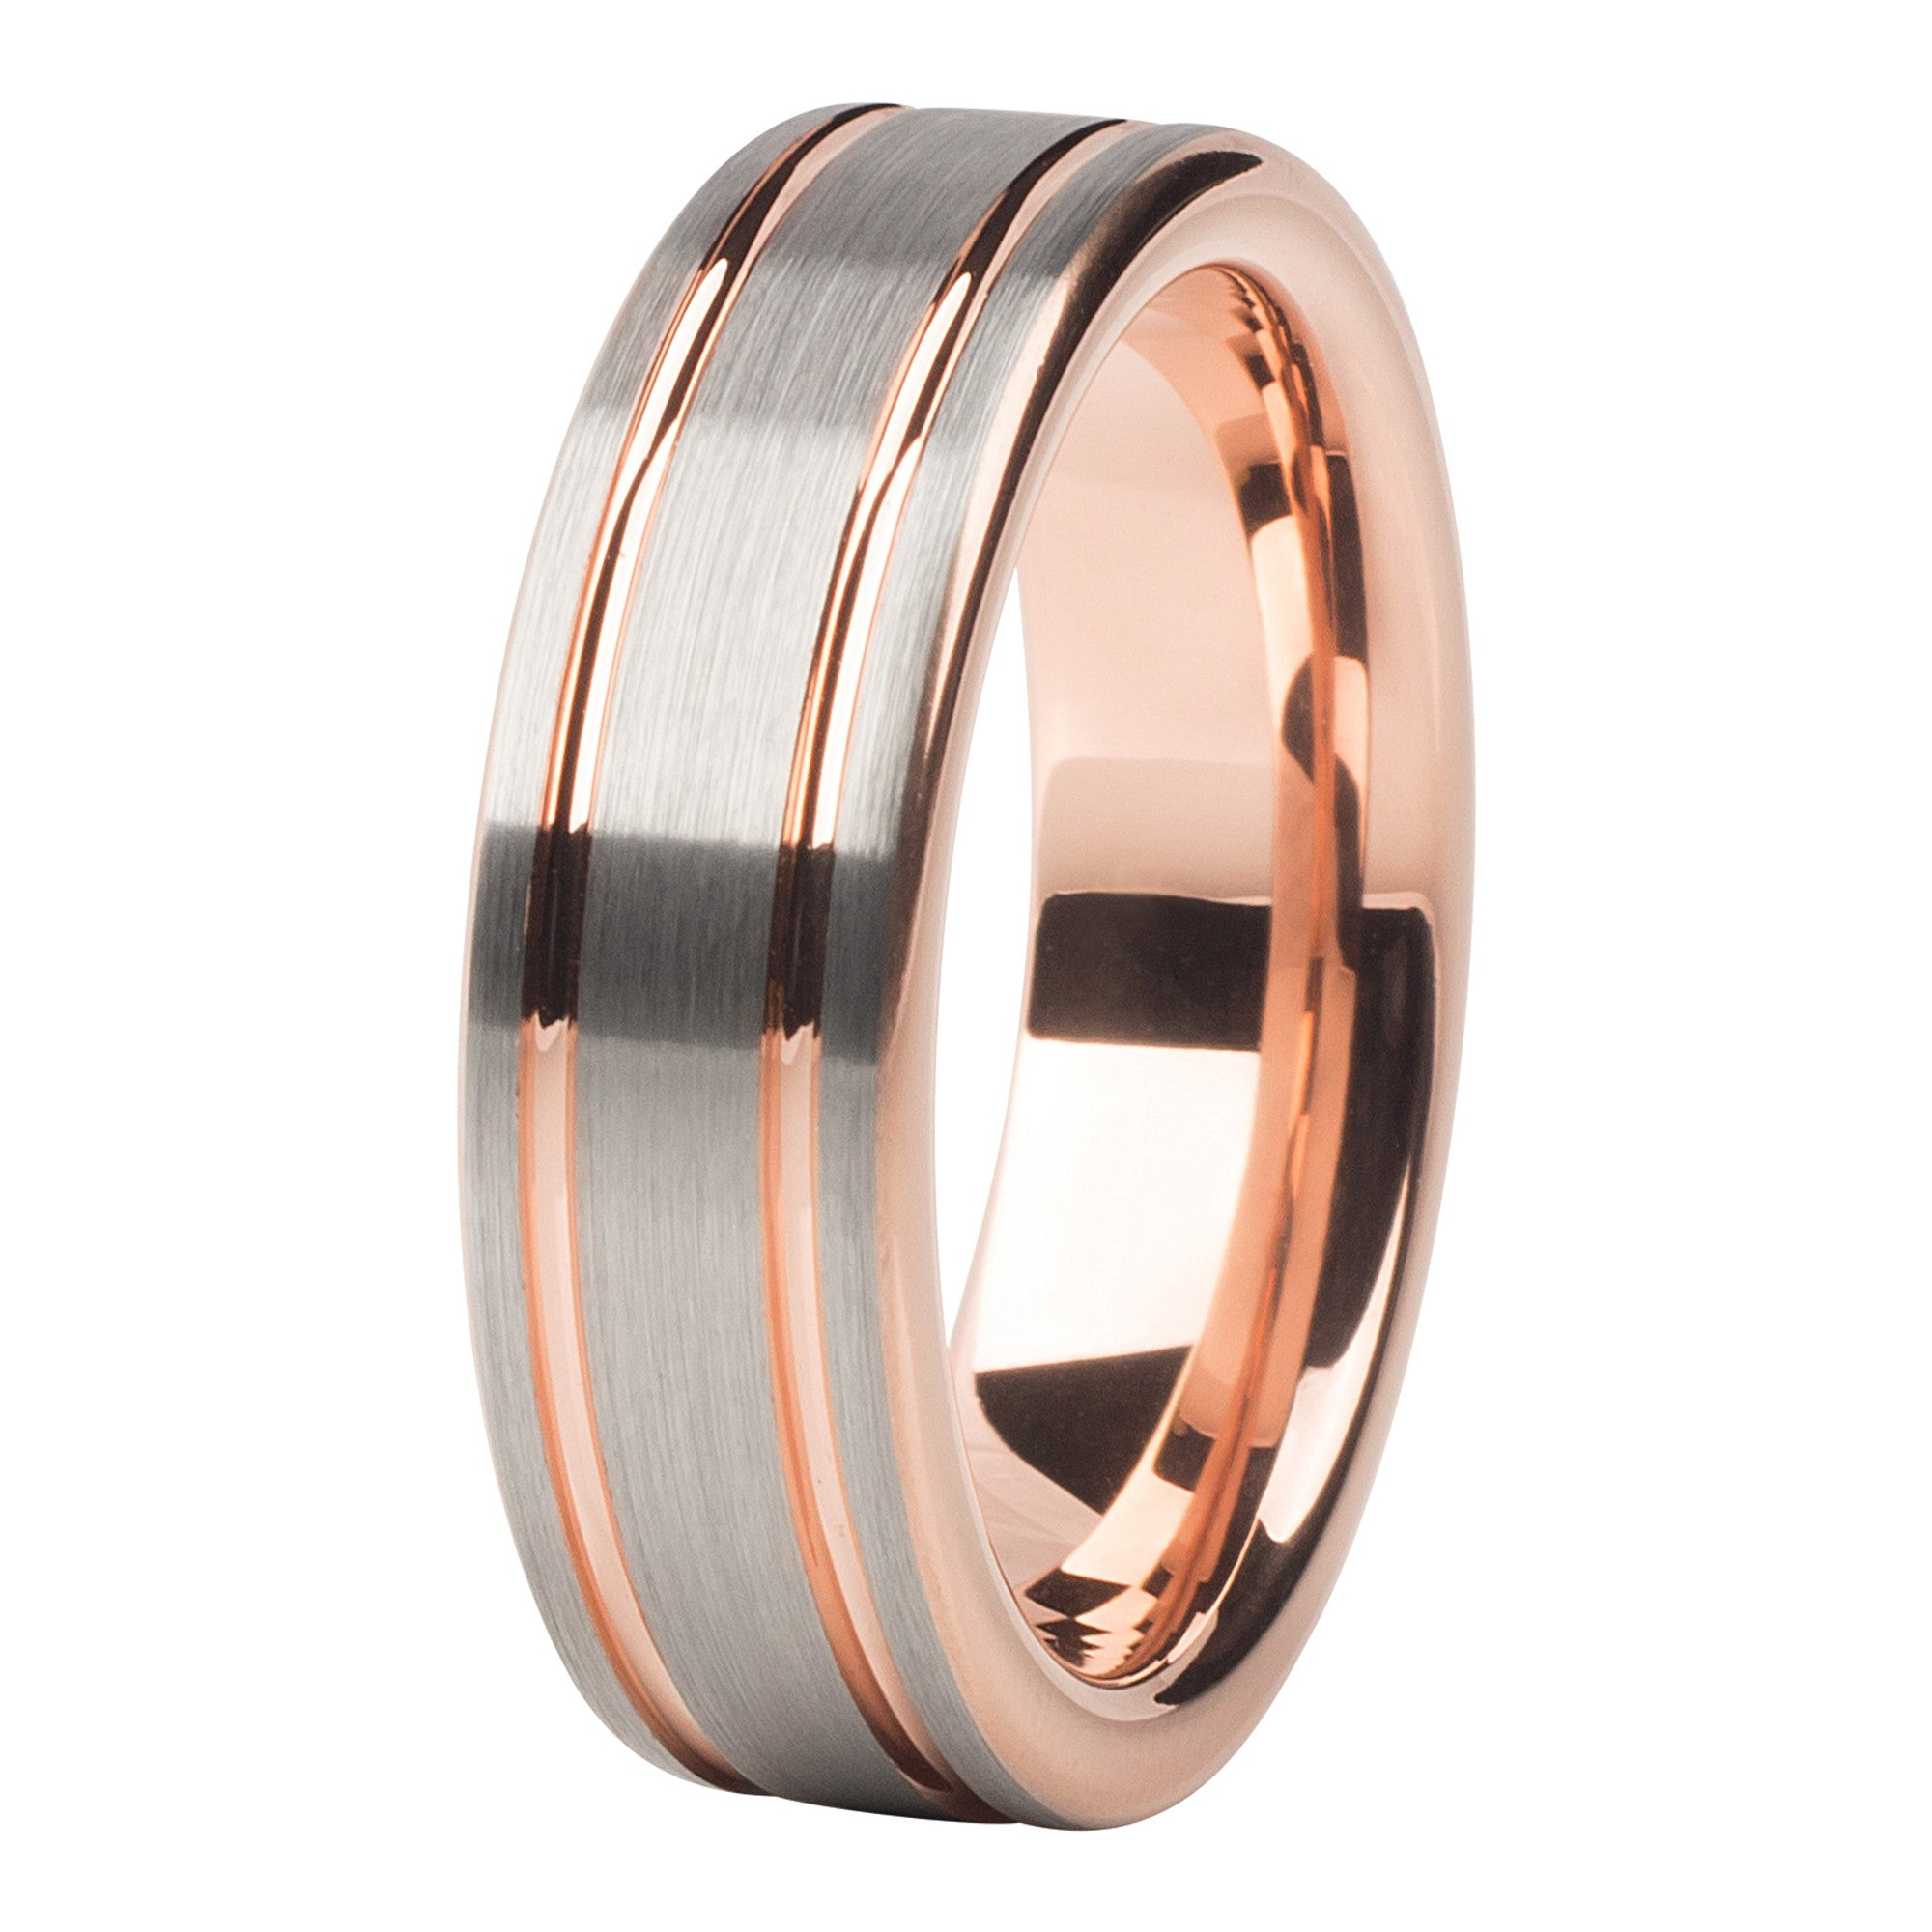 yellow plated band of jewelry timeless wedding gold dsc tungsten copy llc half products carbide fate rings dome hudson kim